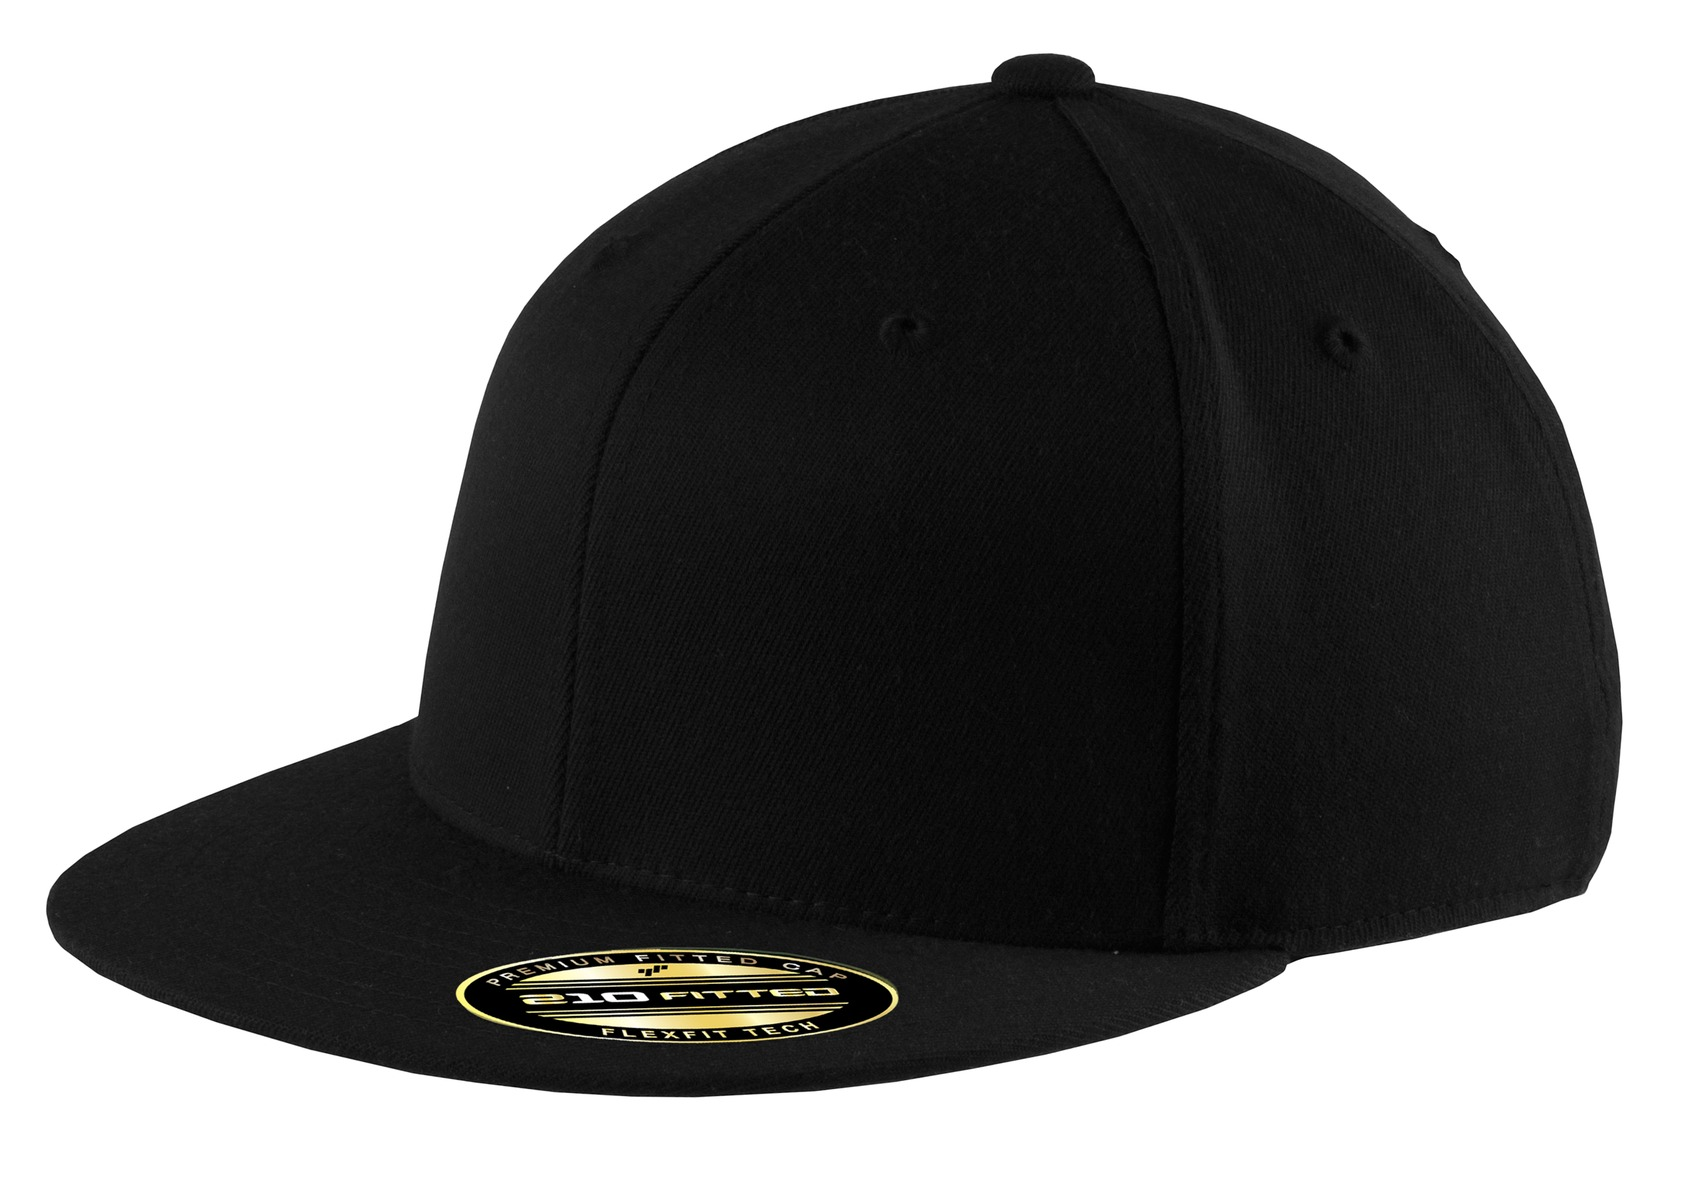 eaa9ea69f Port Authority Flexfit Flat Bill Cap